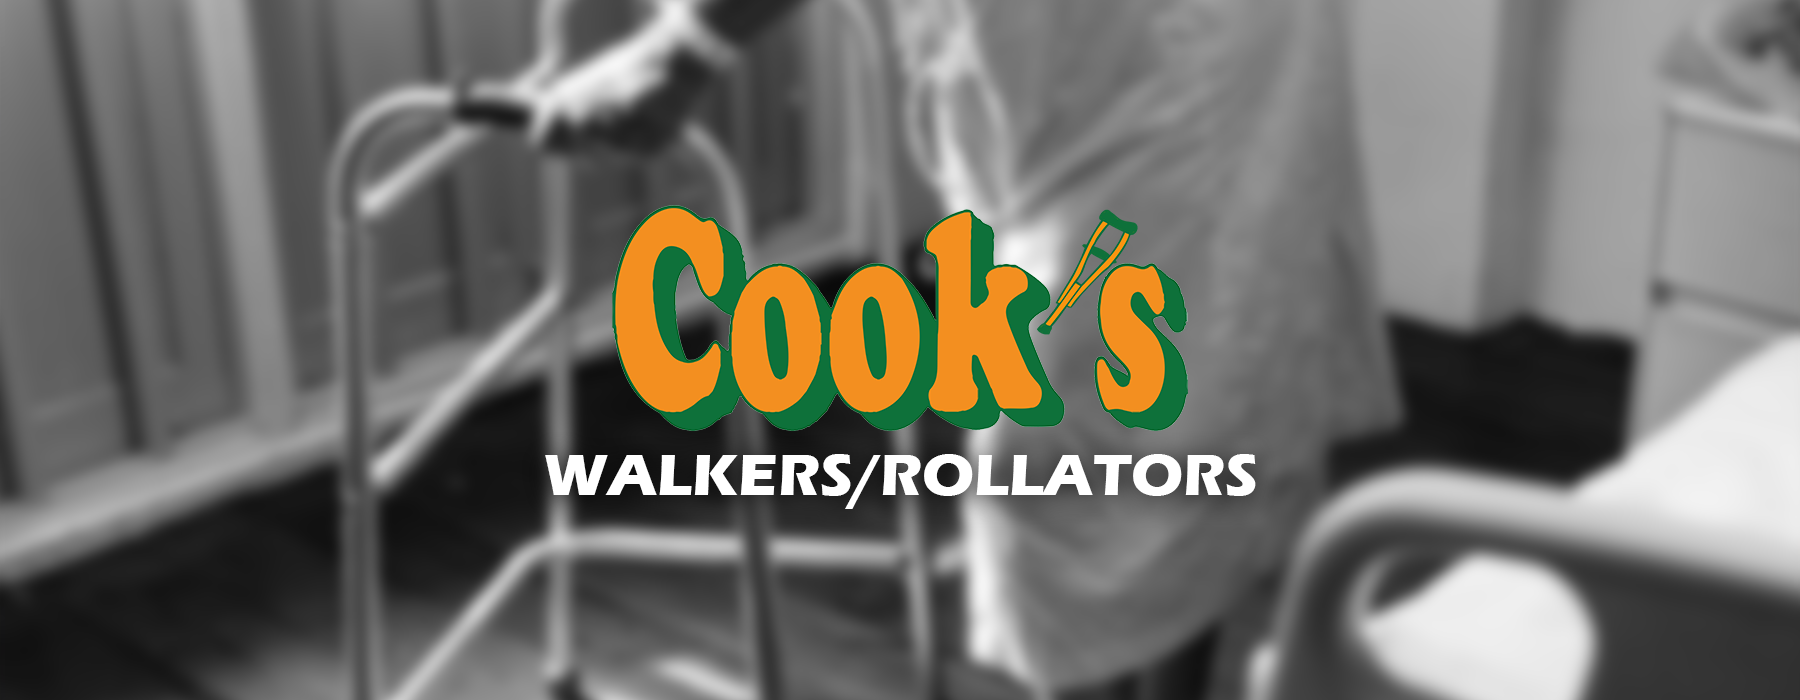 Walkers-and-Rollators.png